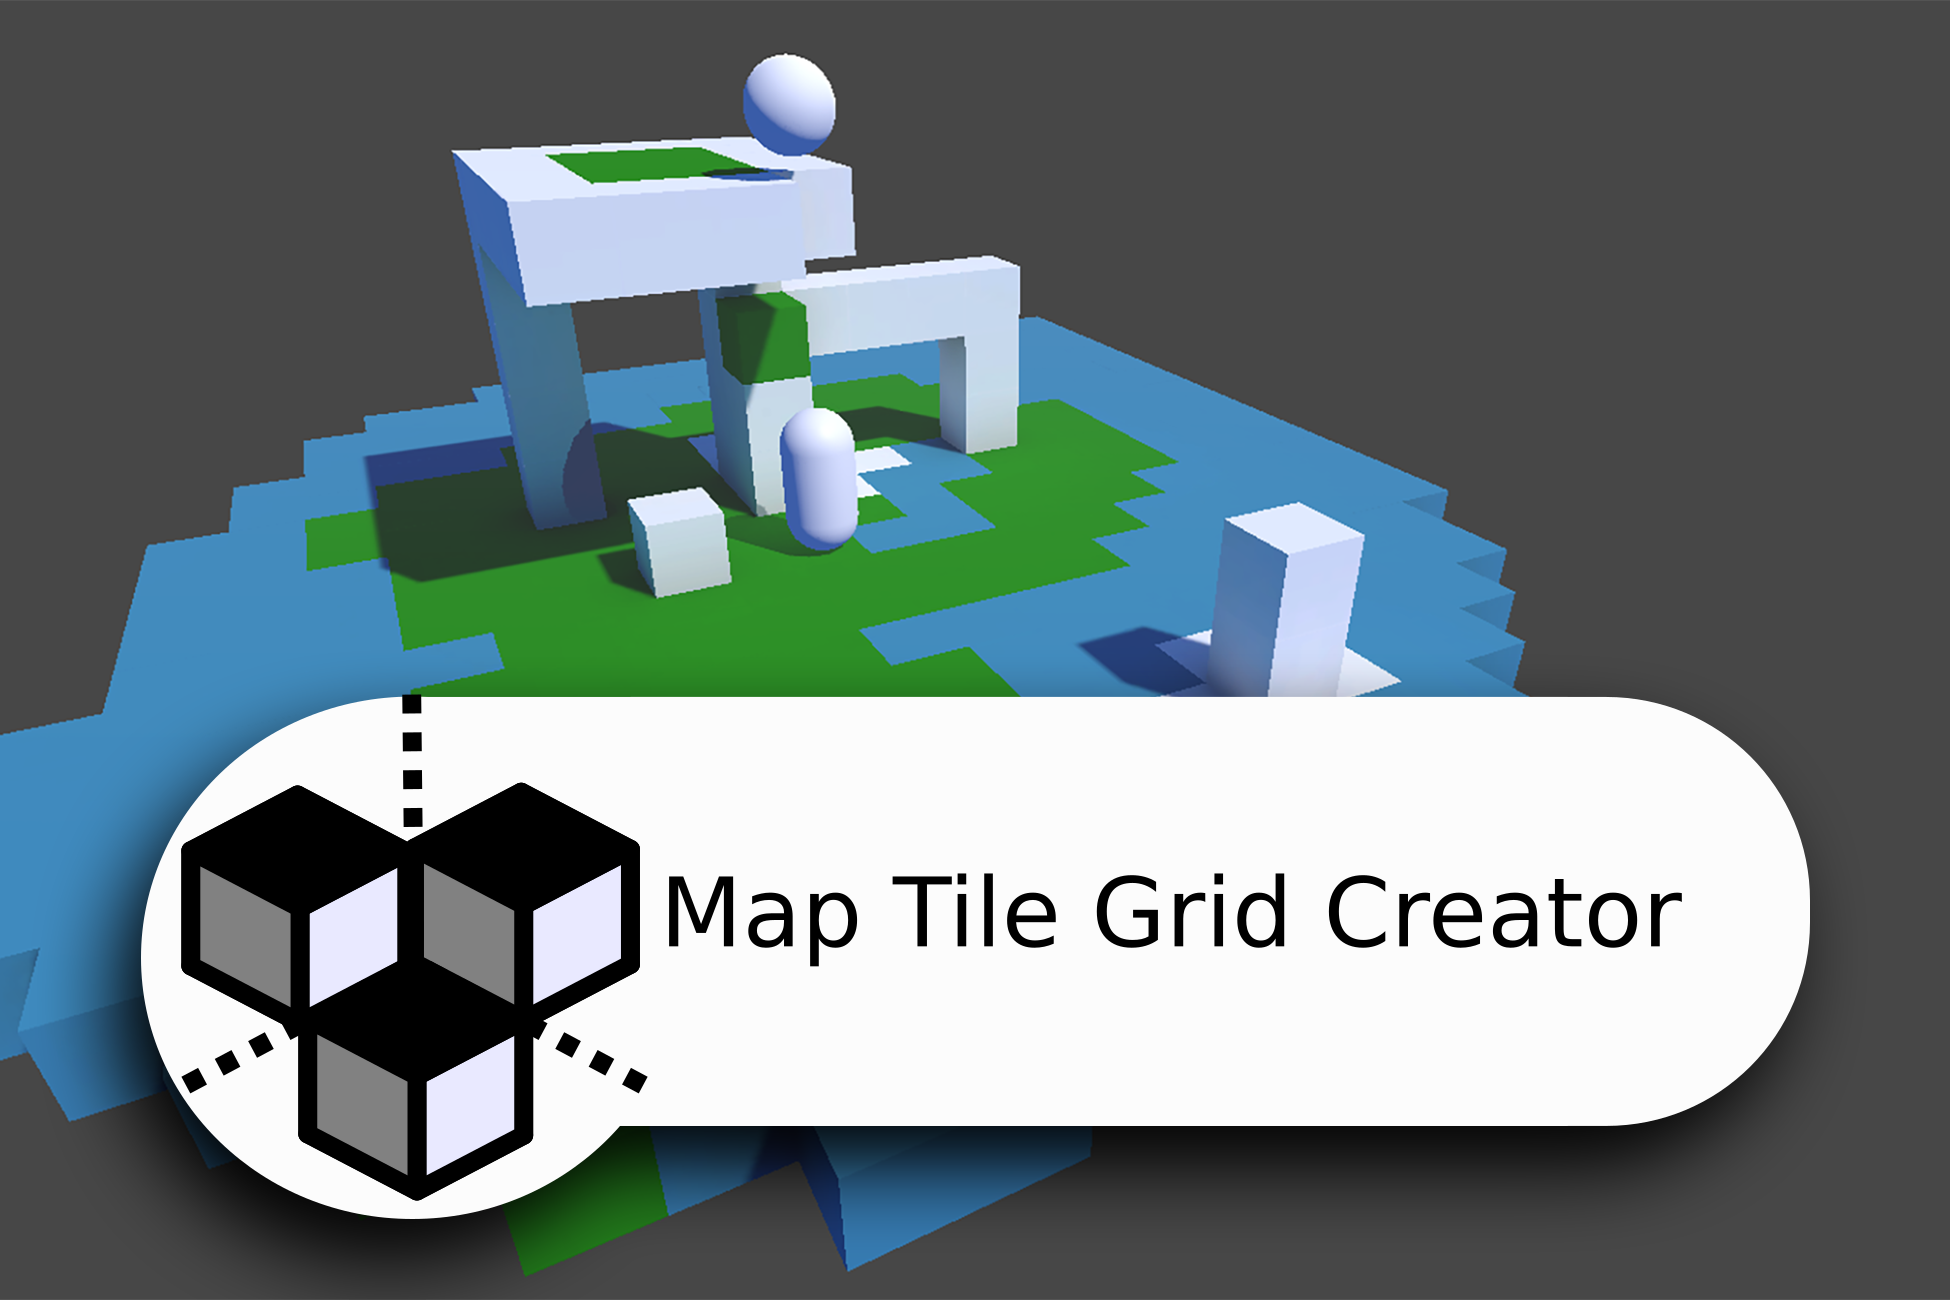 Map Tile Grid Creator